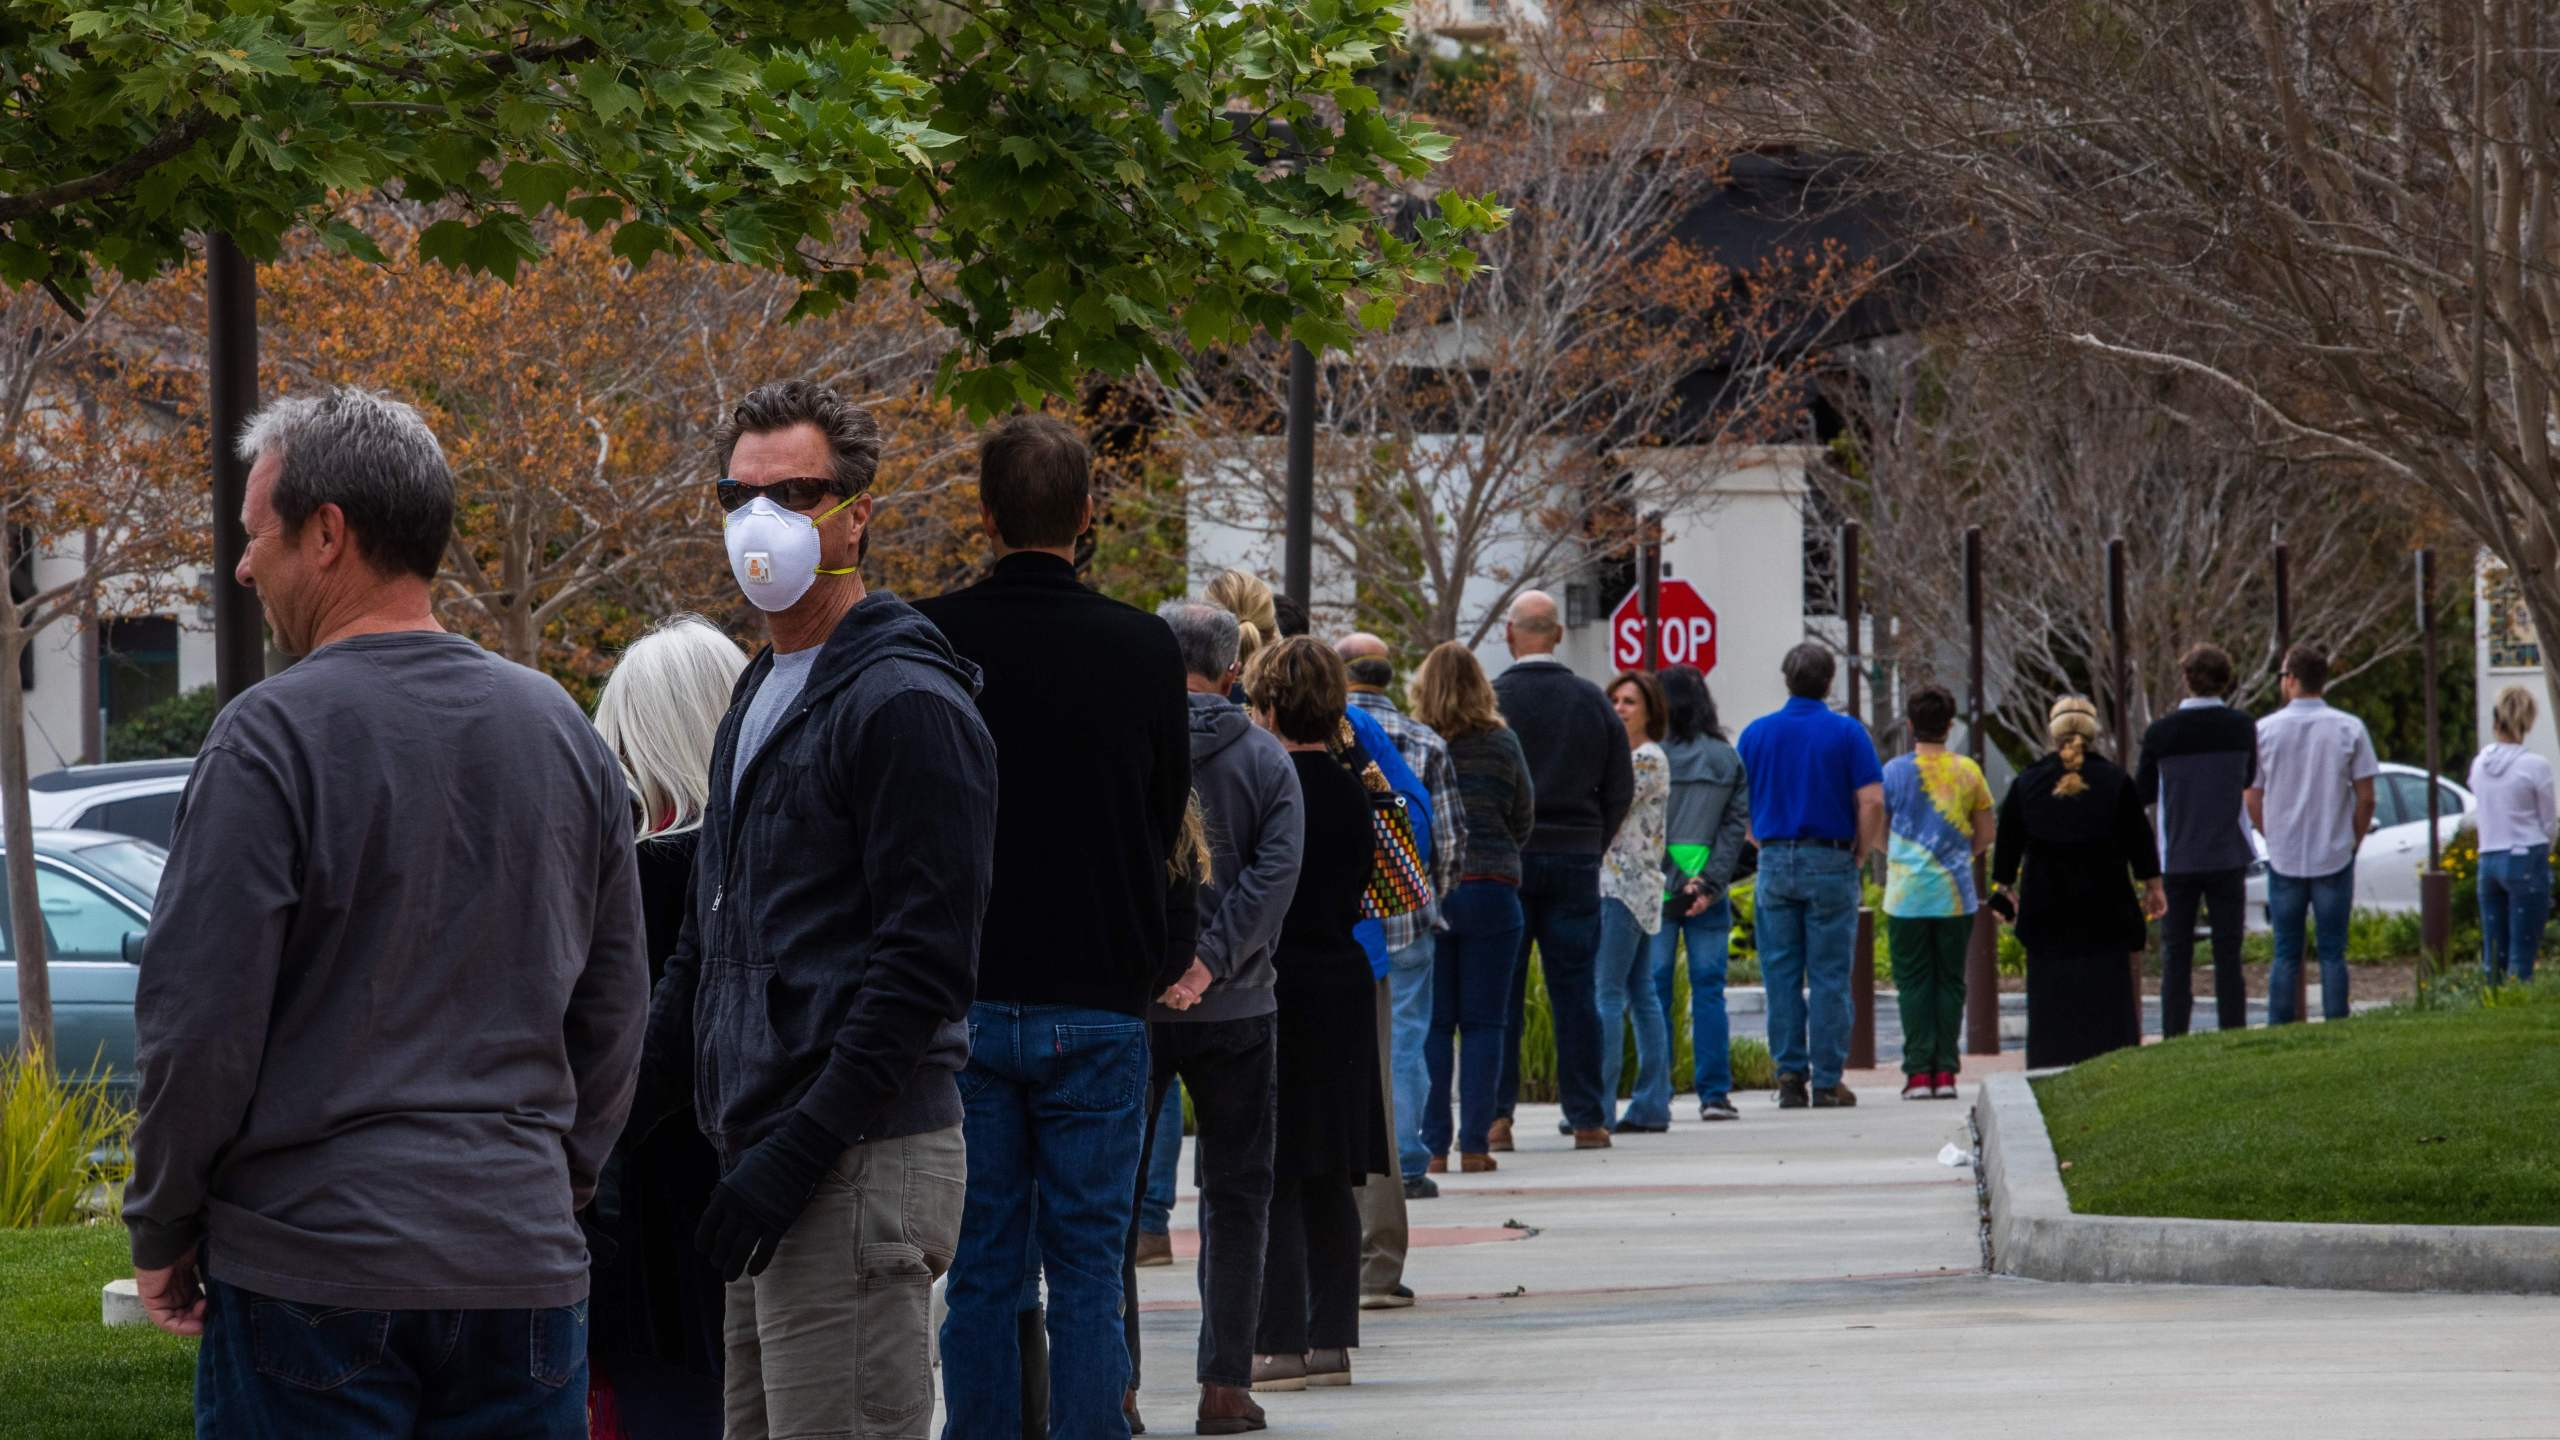 People wait in line to get into the Godspeak Calvary Chapel in Thousand Oaks to take communion after watching Palm Sunday Service on April 5, 2020. (Apu Gomes / AFP / Getty Images)